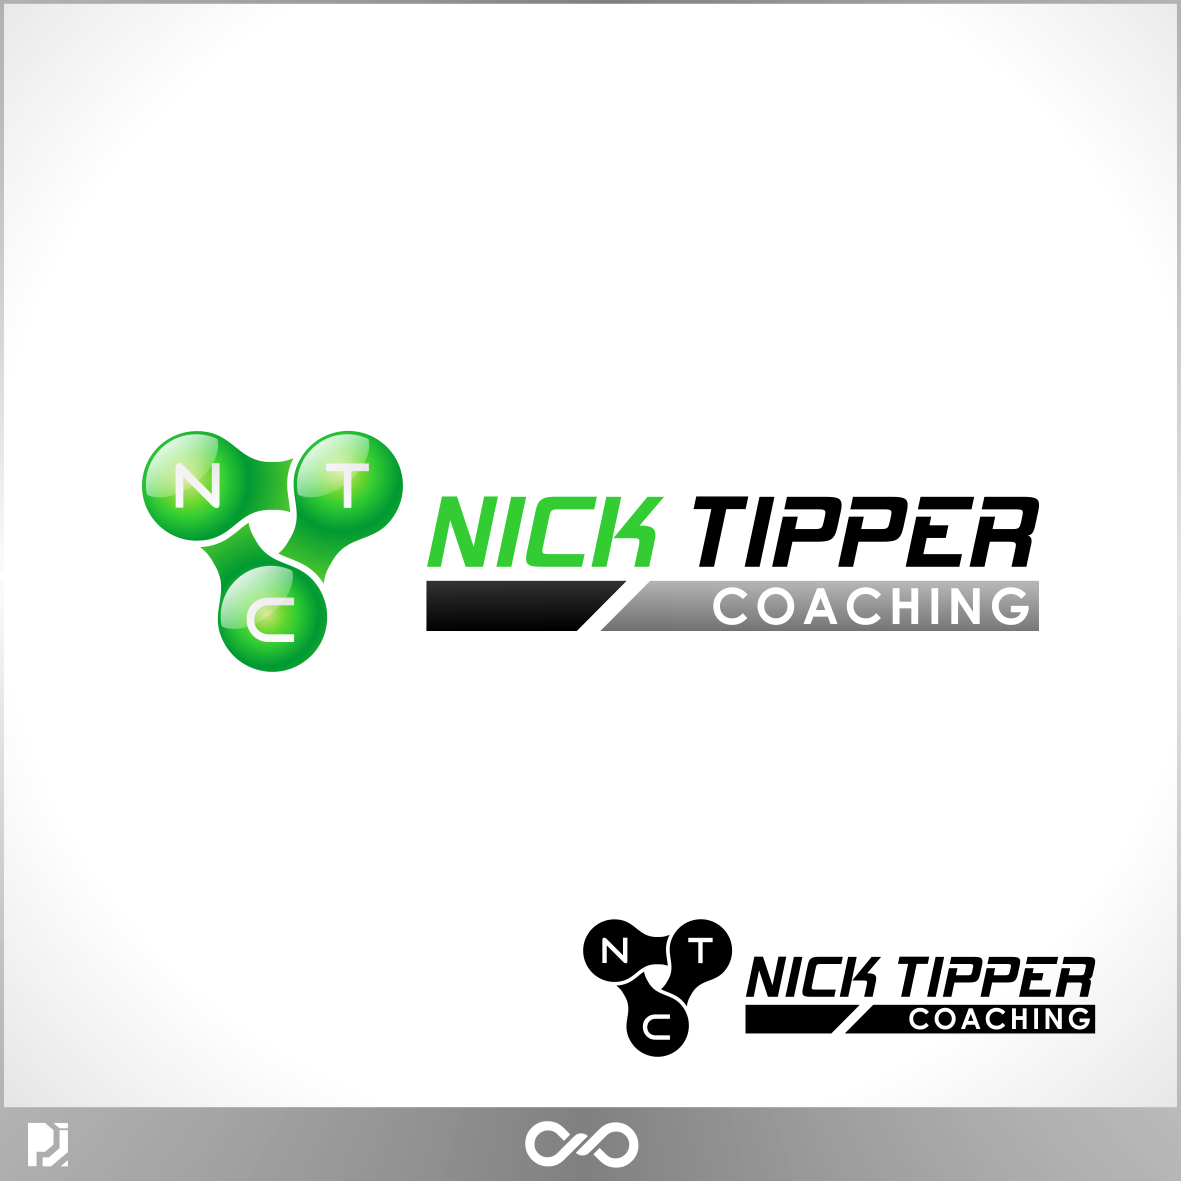 Logo Design by PJD - Entry No. 115 in the Logo Design Contest Logo Design for Nick Tipper Coaching.